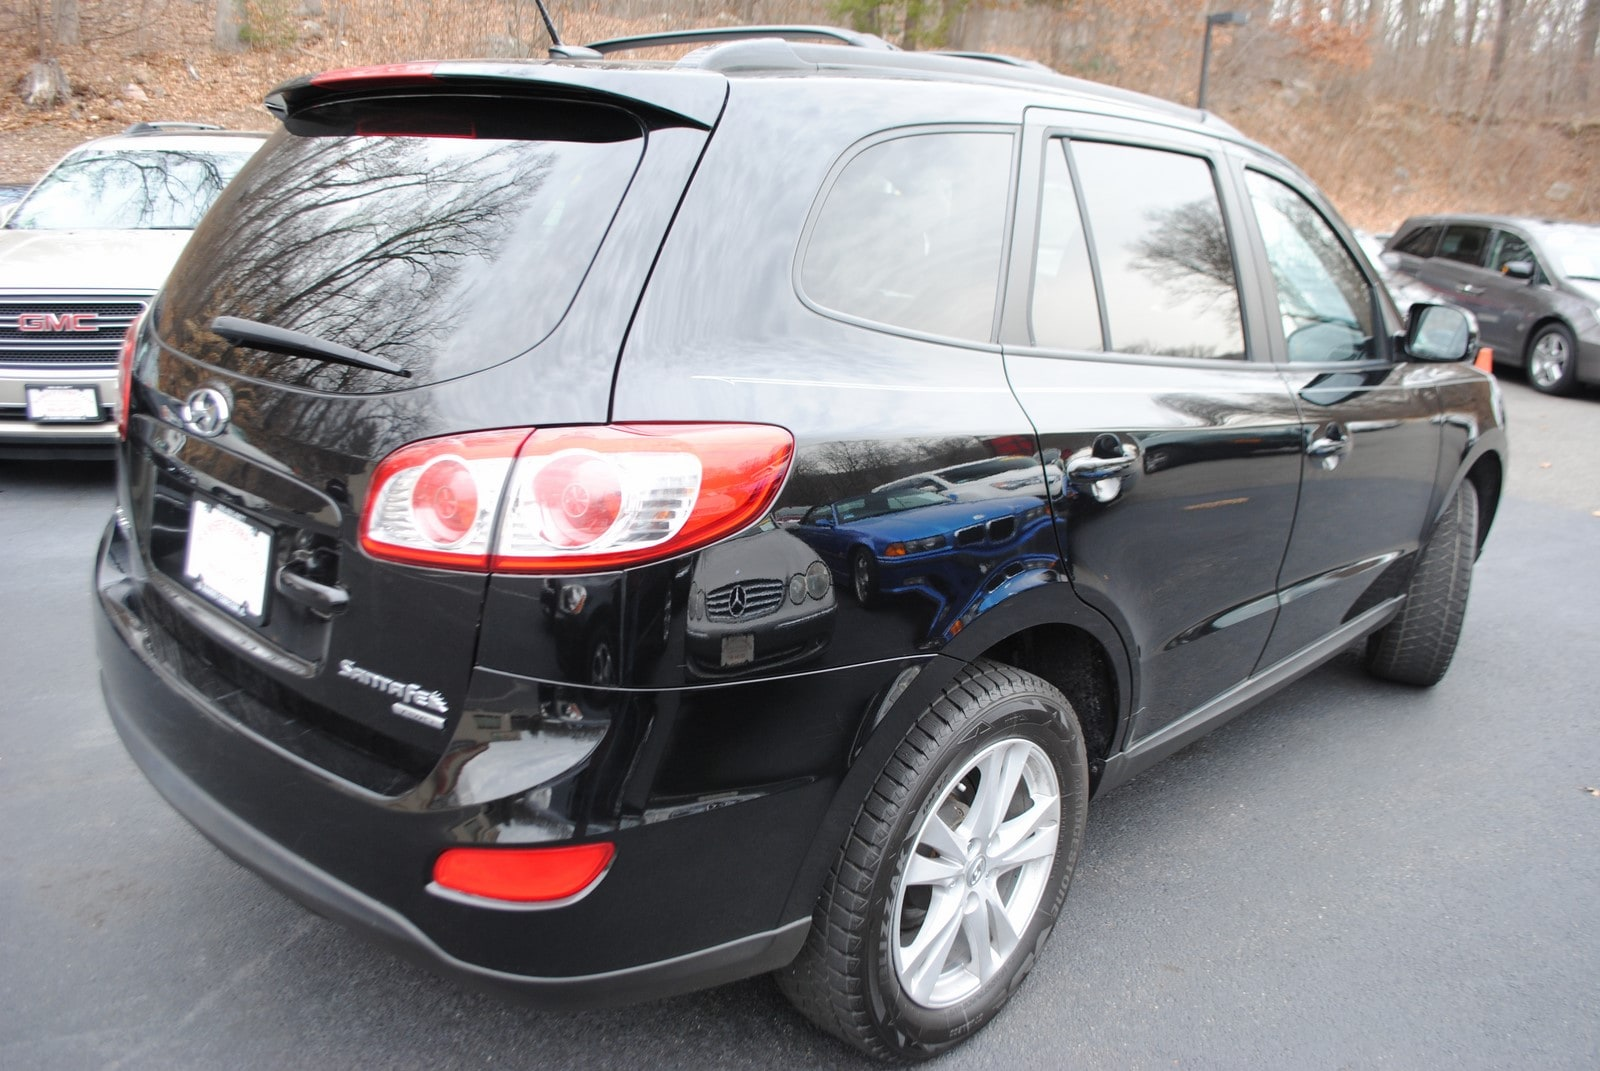 used 2010 hyundai santa fe for sale west milford nj. Black Bedroom Furniture Sets. Home Design Ideas